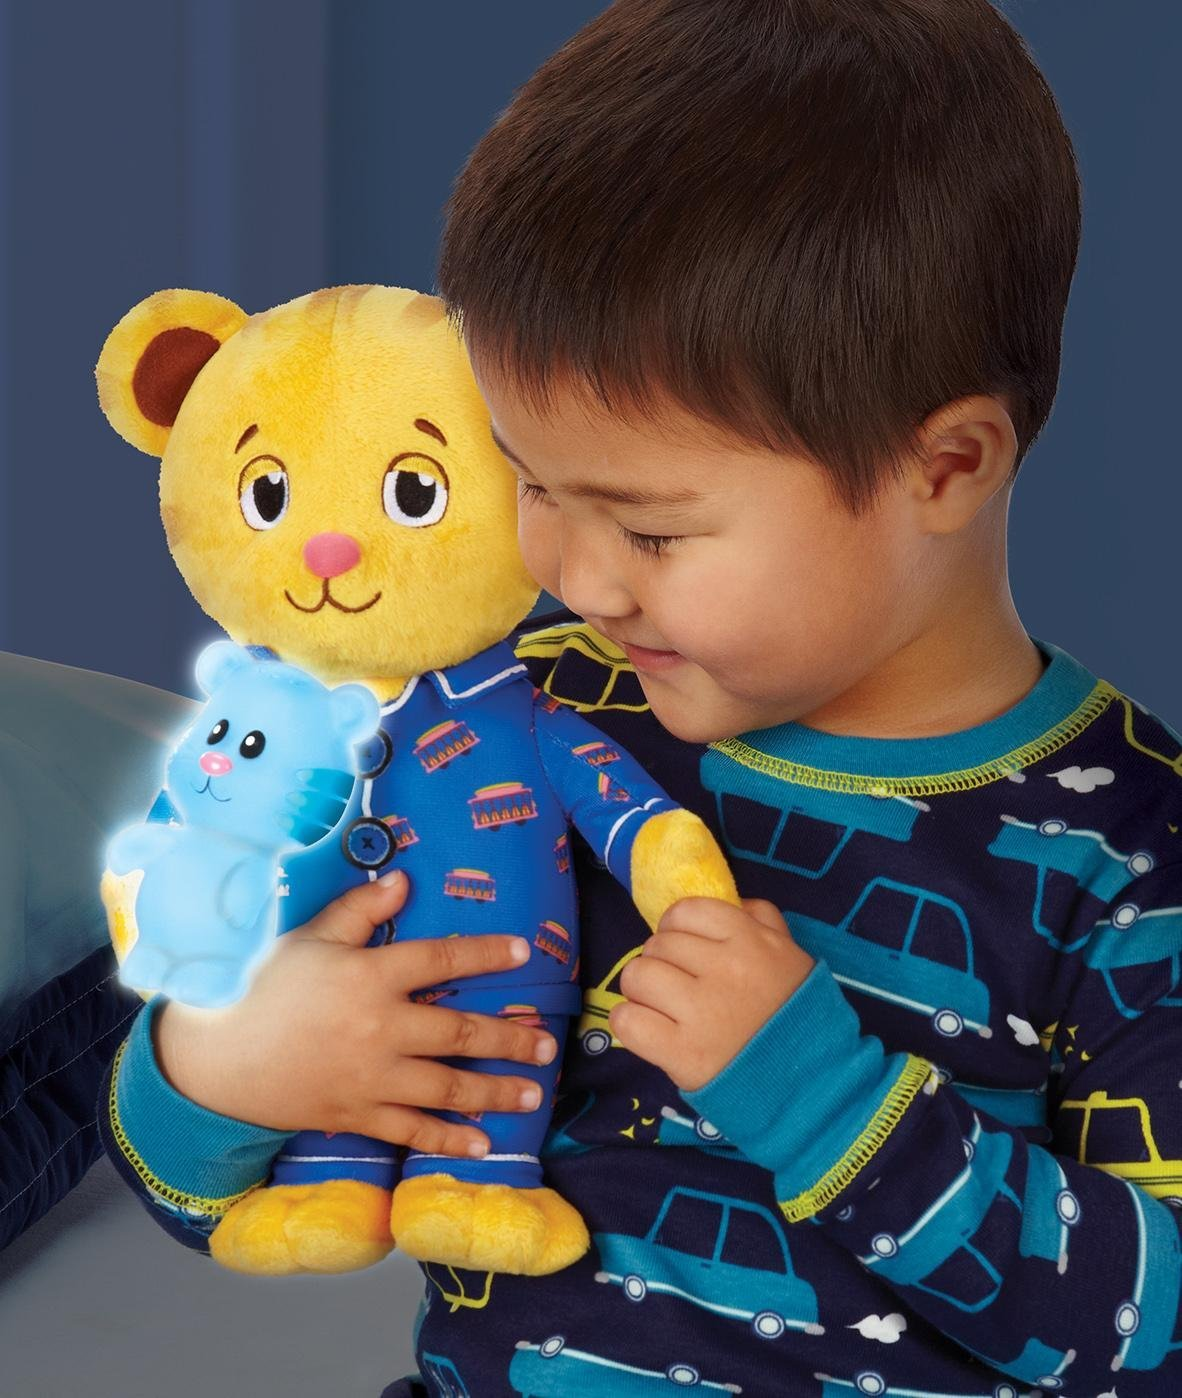 Glow Toys For Bedtime Amazon Daniel Tiger 39s Neighborhood Snuggle And Glow